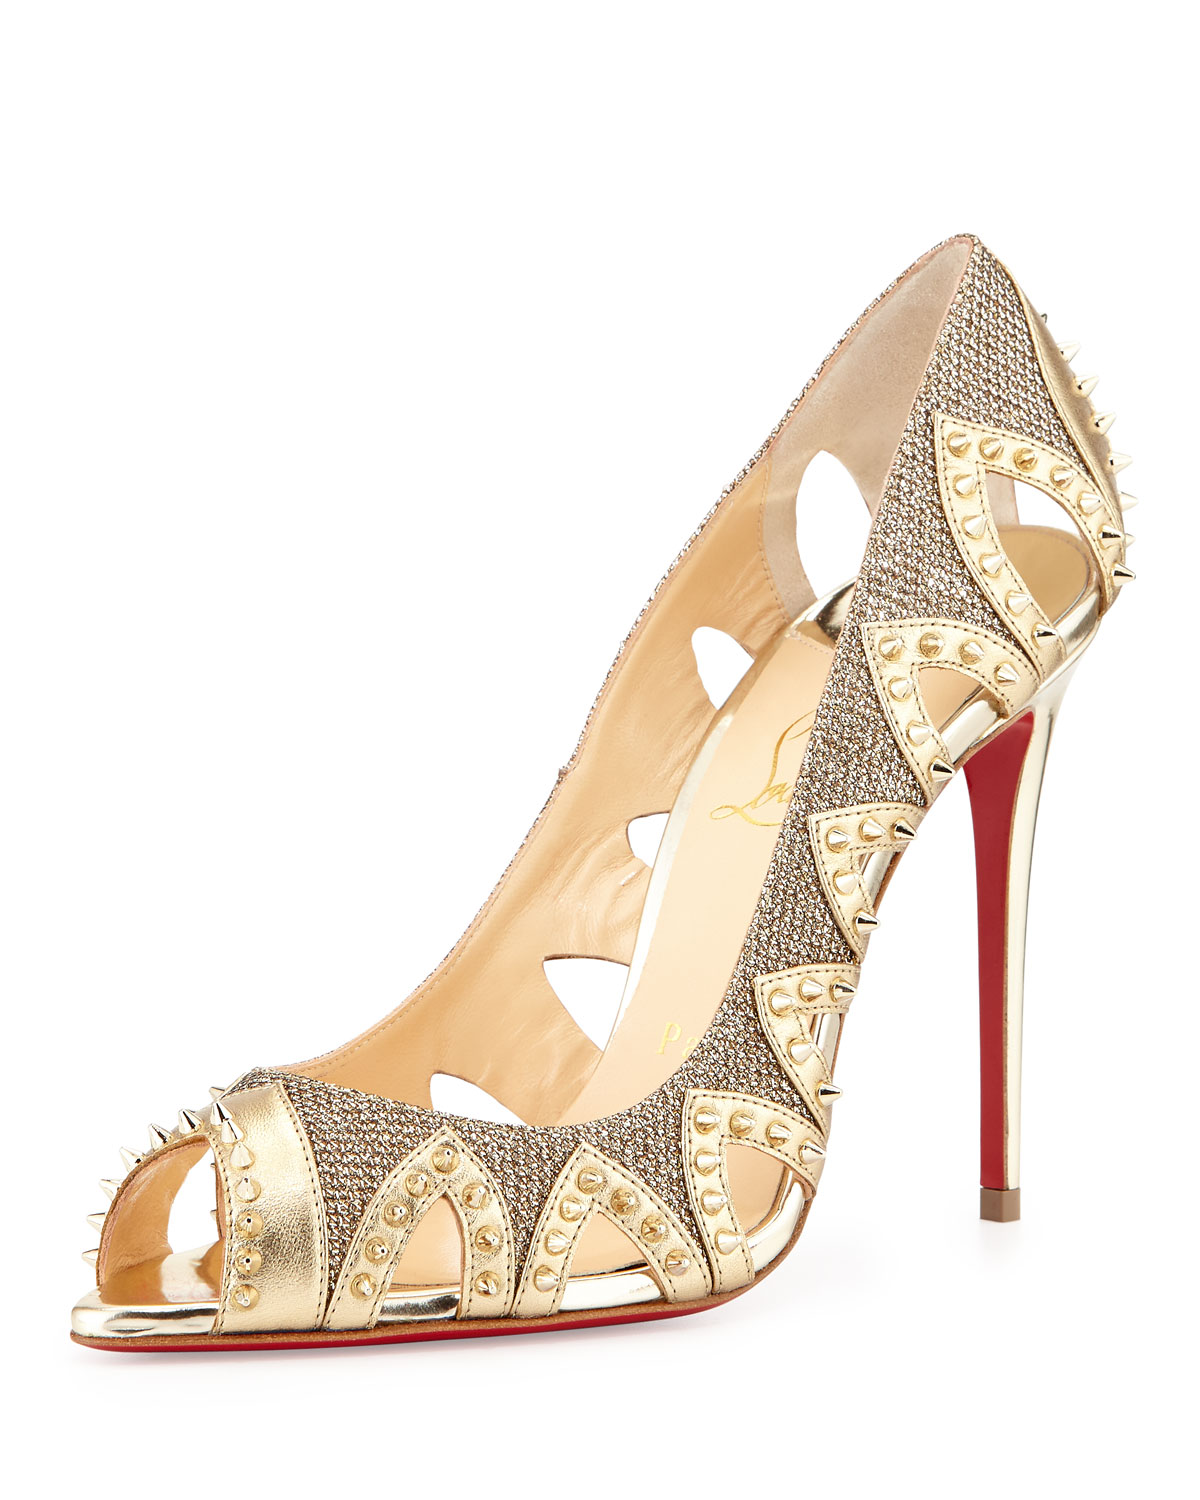 225db9d832c Christian Louboutin Circus City Spiked Red Sole Pump